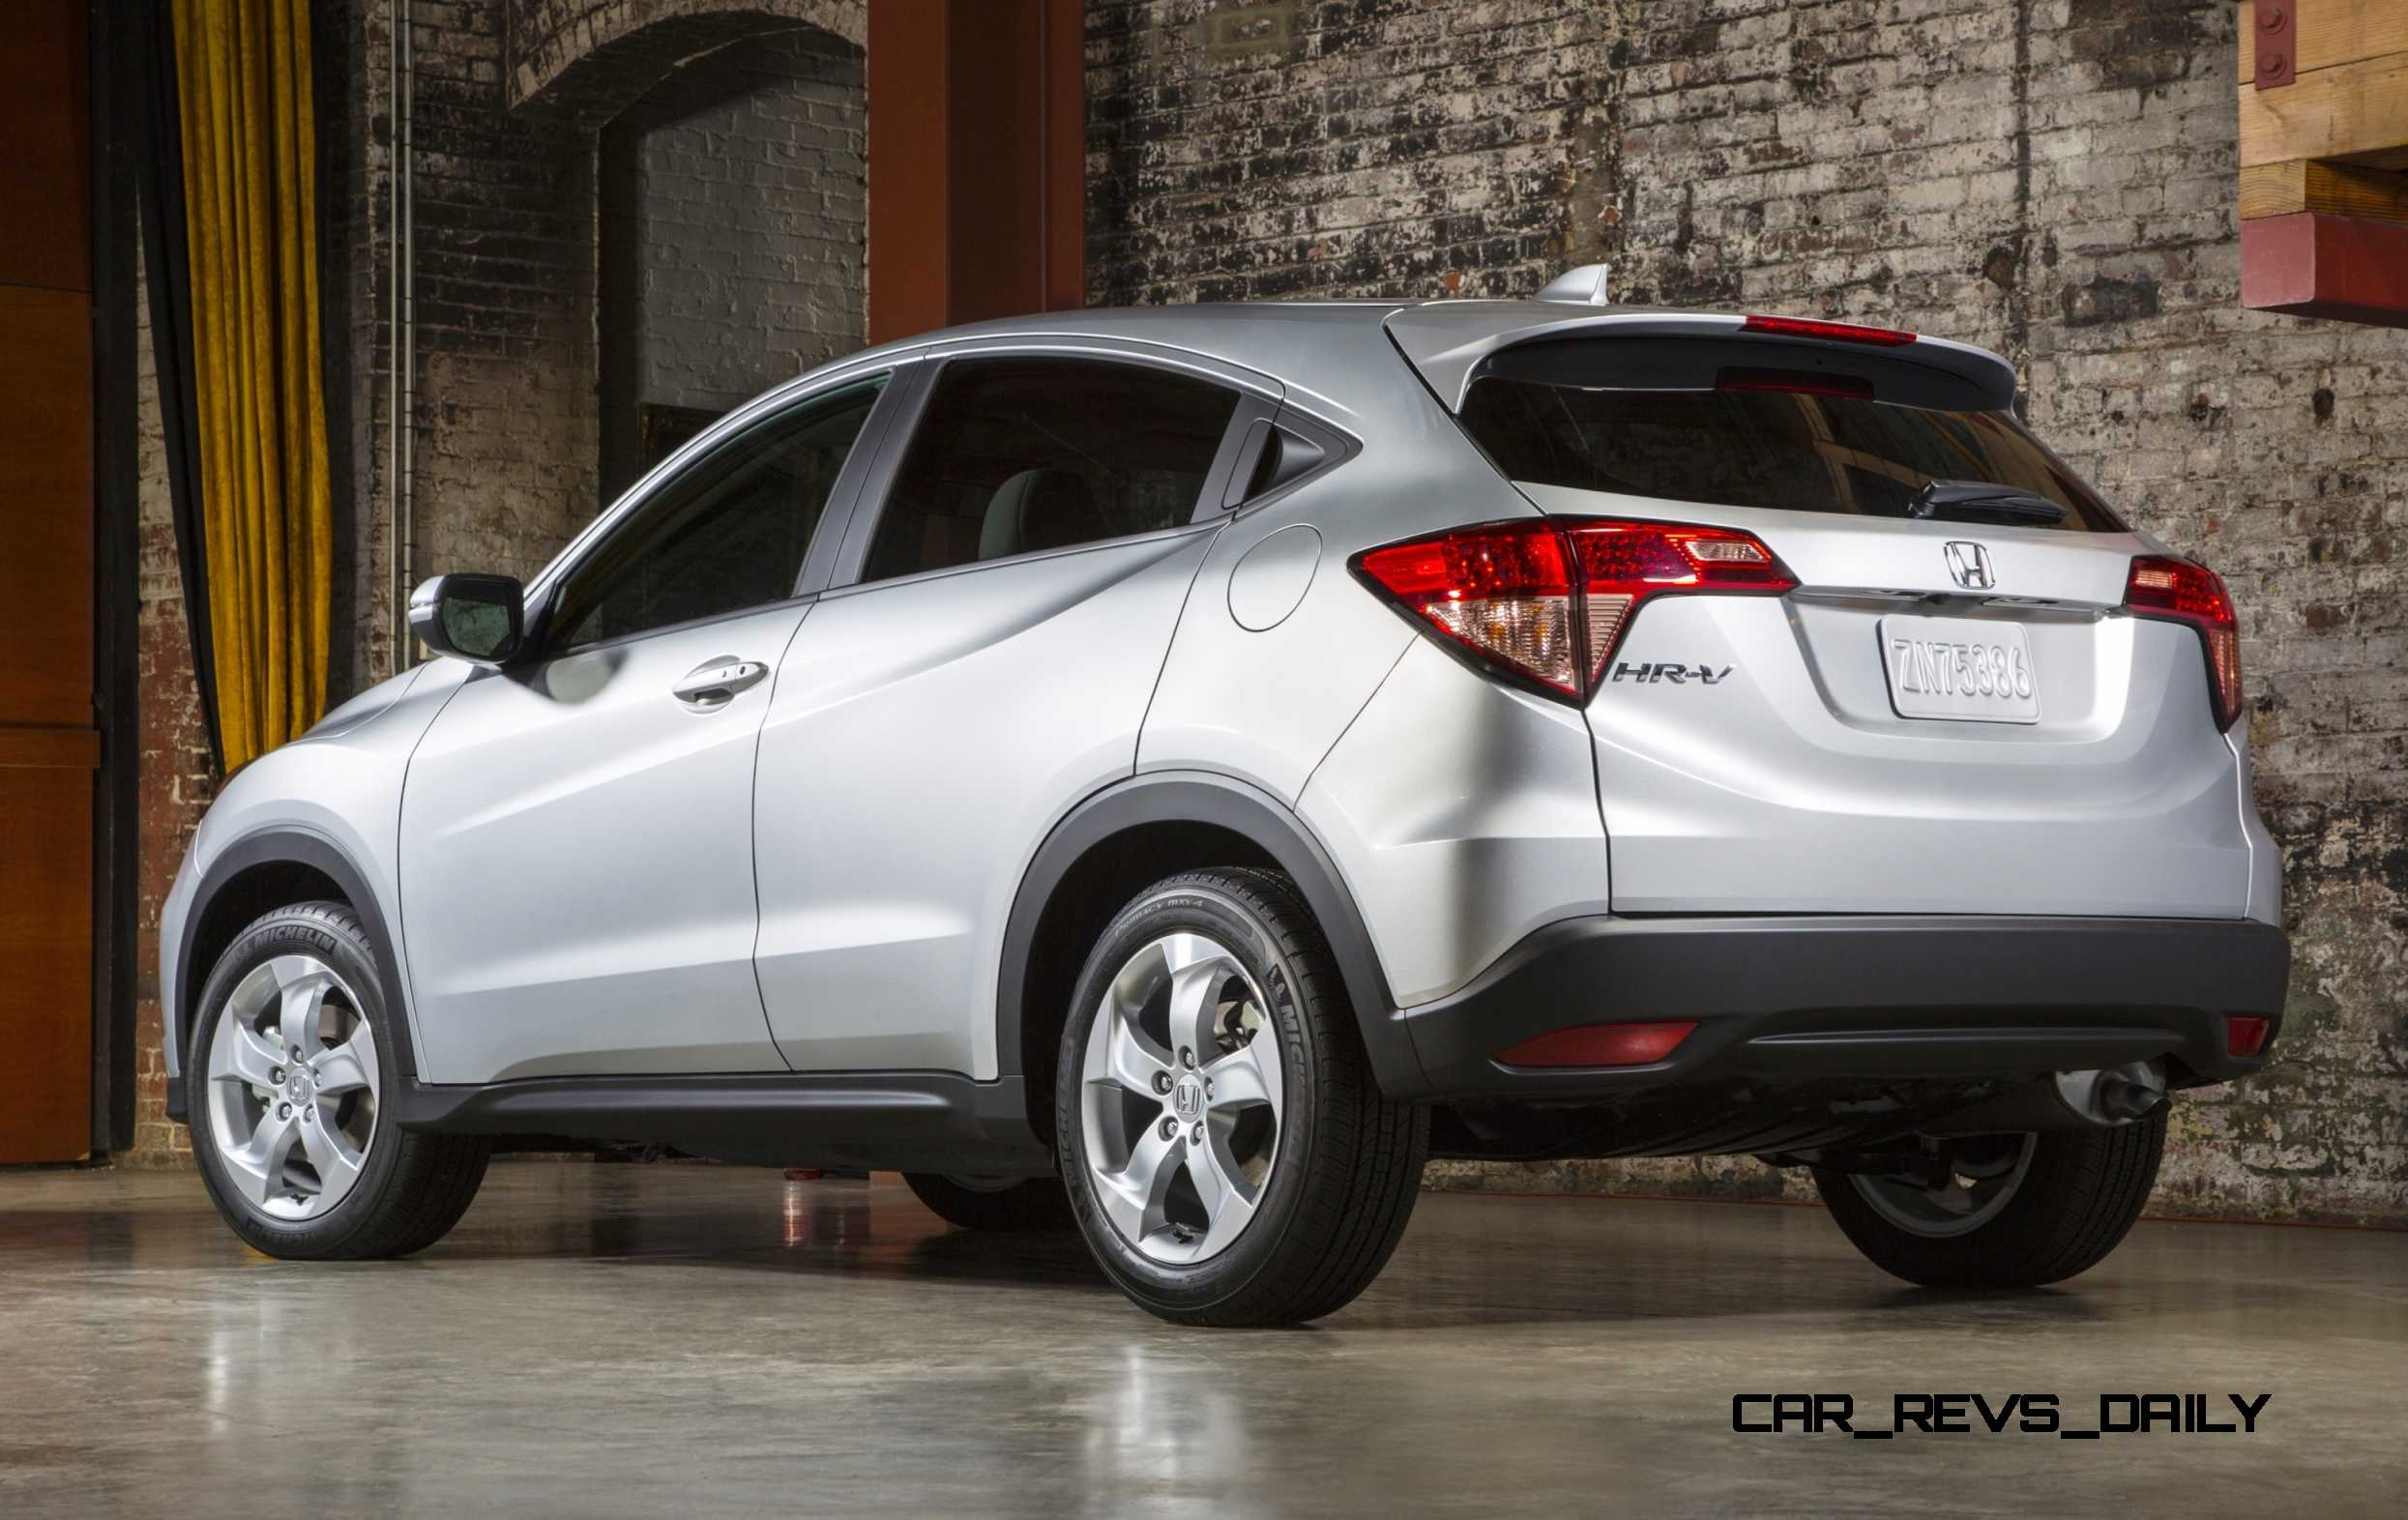 When Is The 2014 Honda Cr V Arriving In The Us